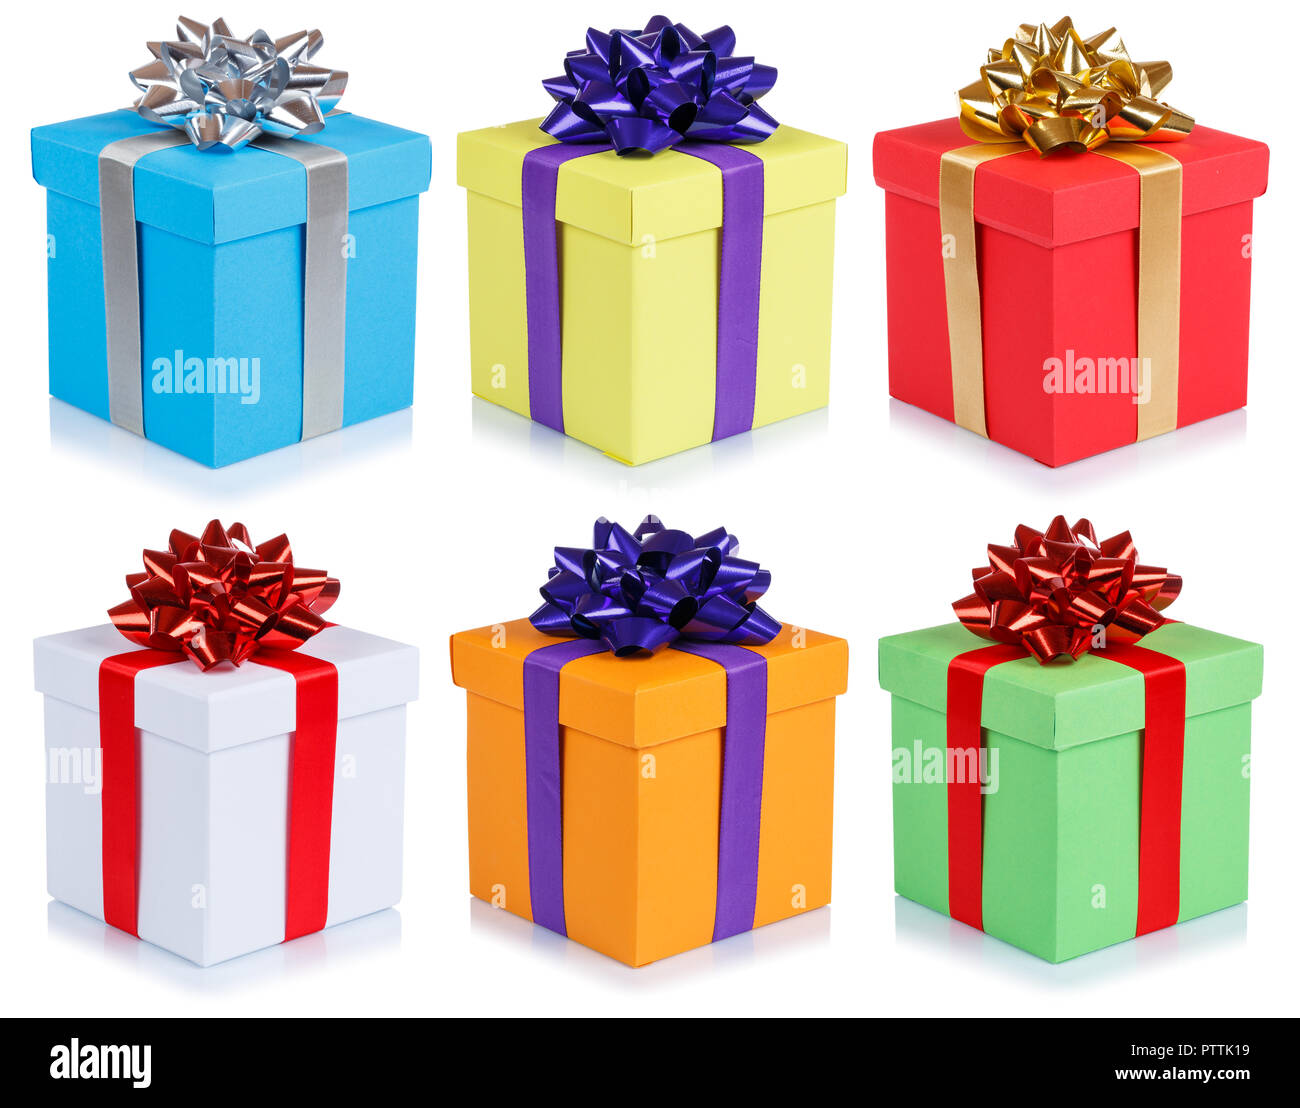 Collection Of Birthday Gifts Christmas Presents Boxes Isolated On A White Background Stock Photo Alamy